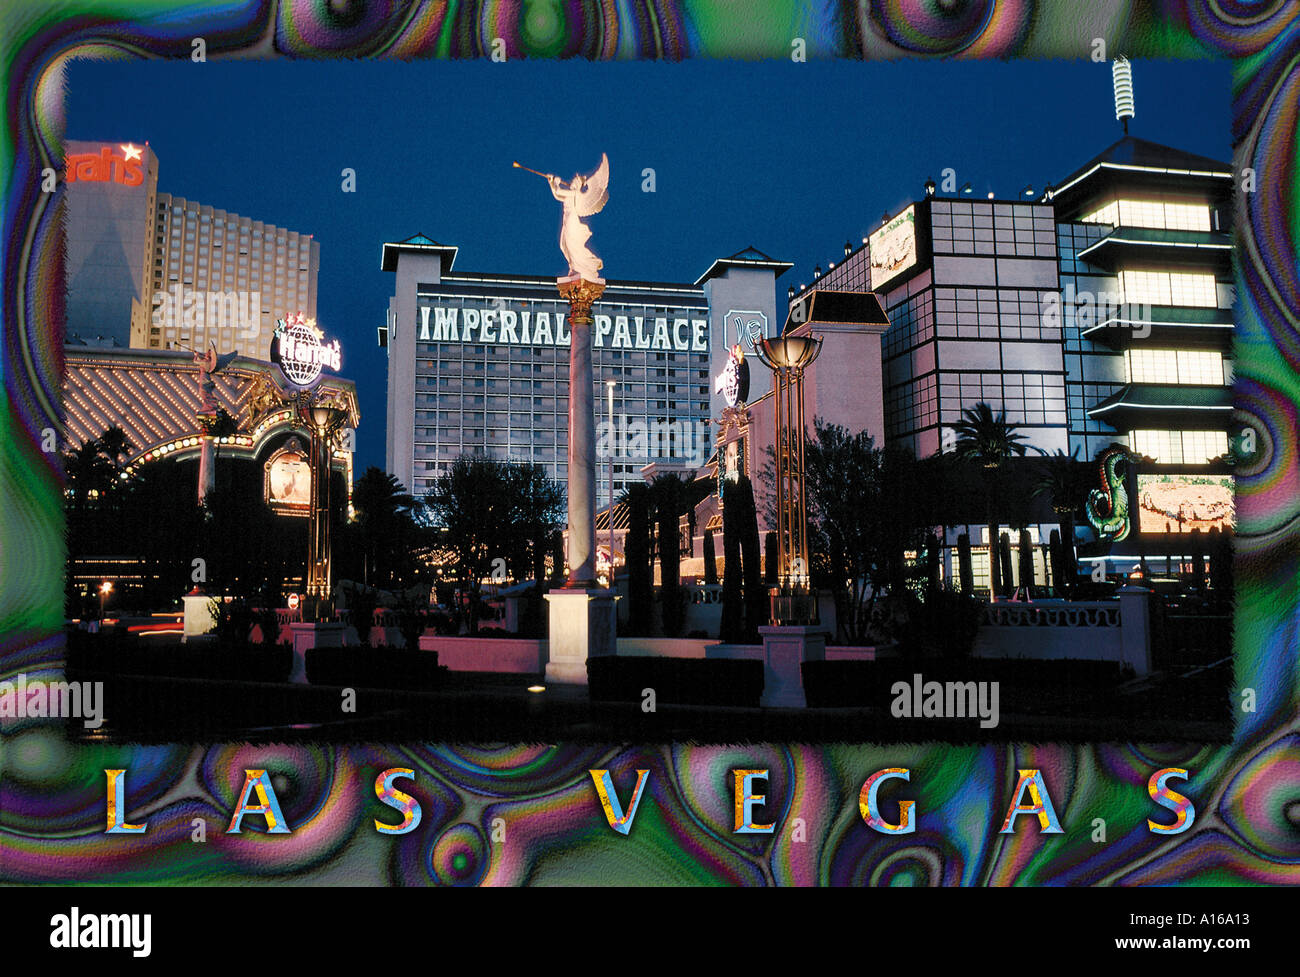 Las vegas imperial palace hotel and casino what is a fun 2 player board game